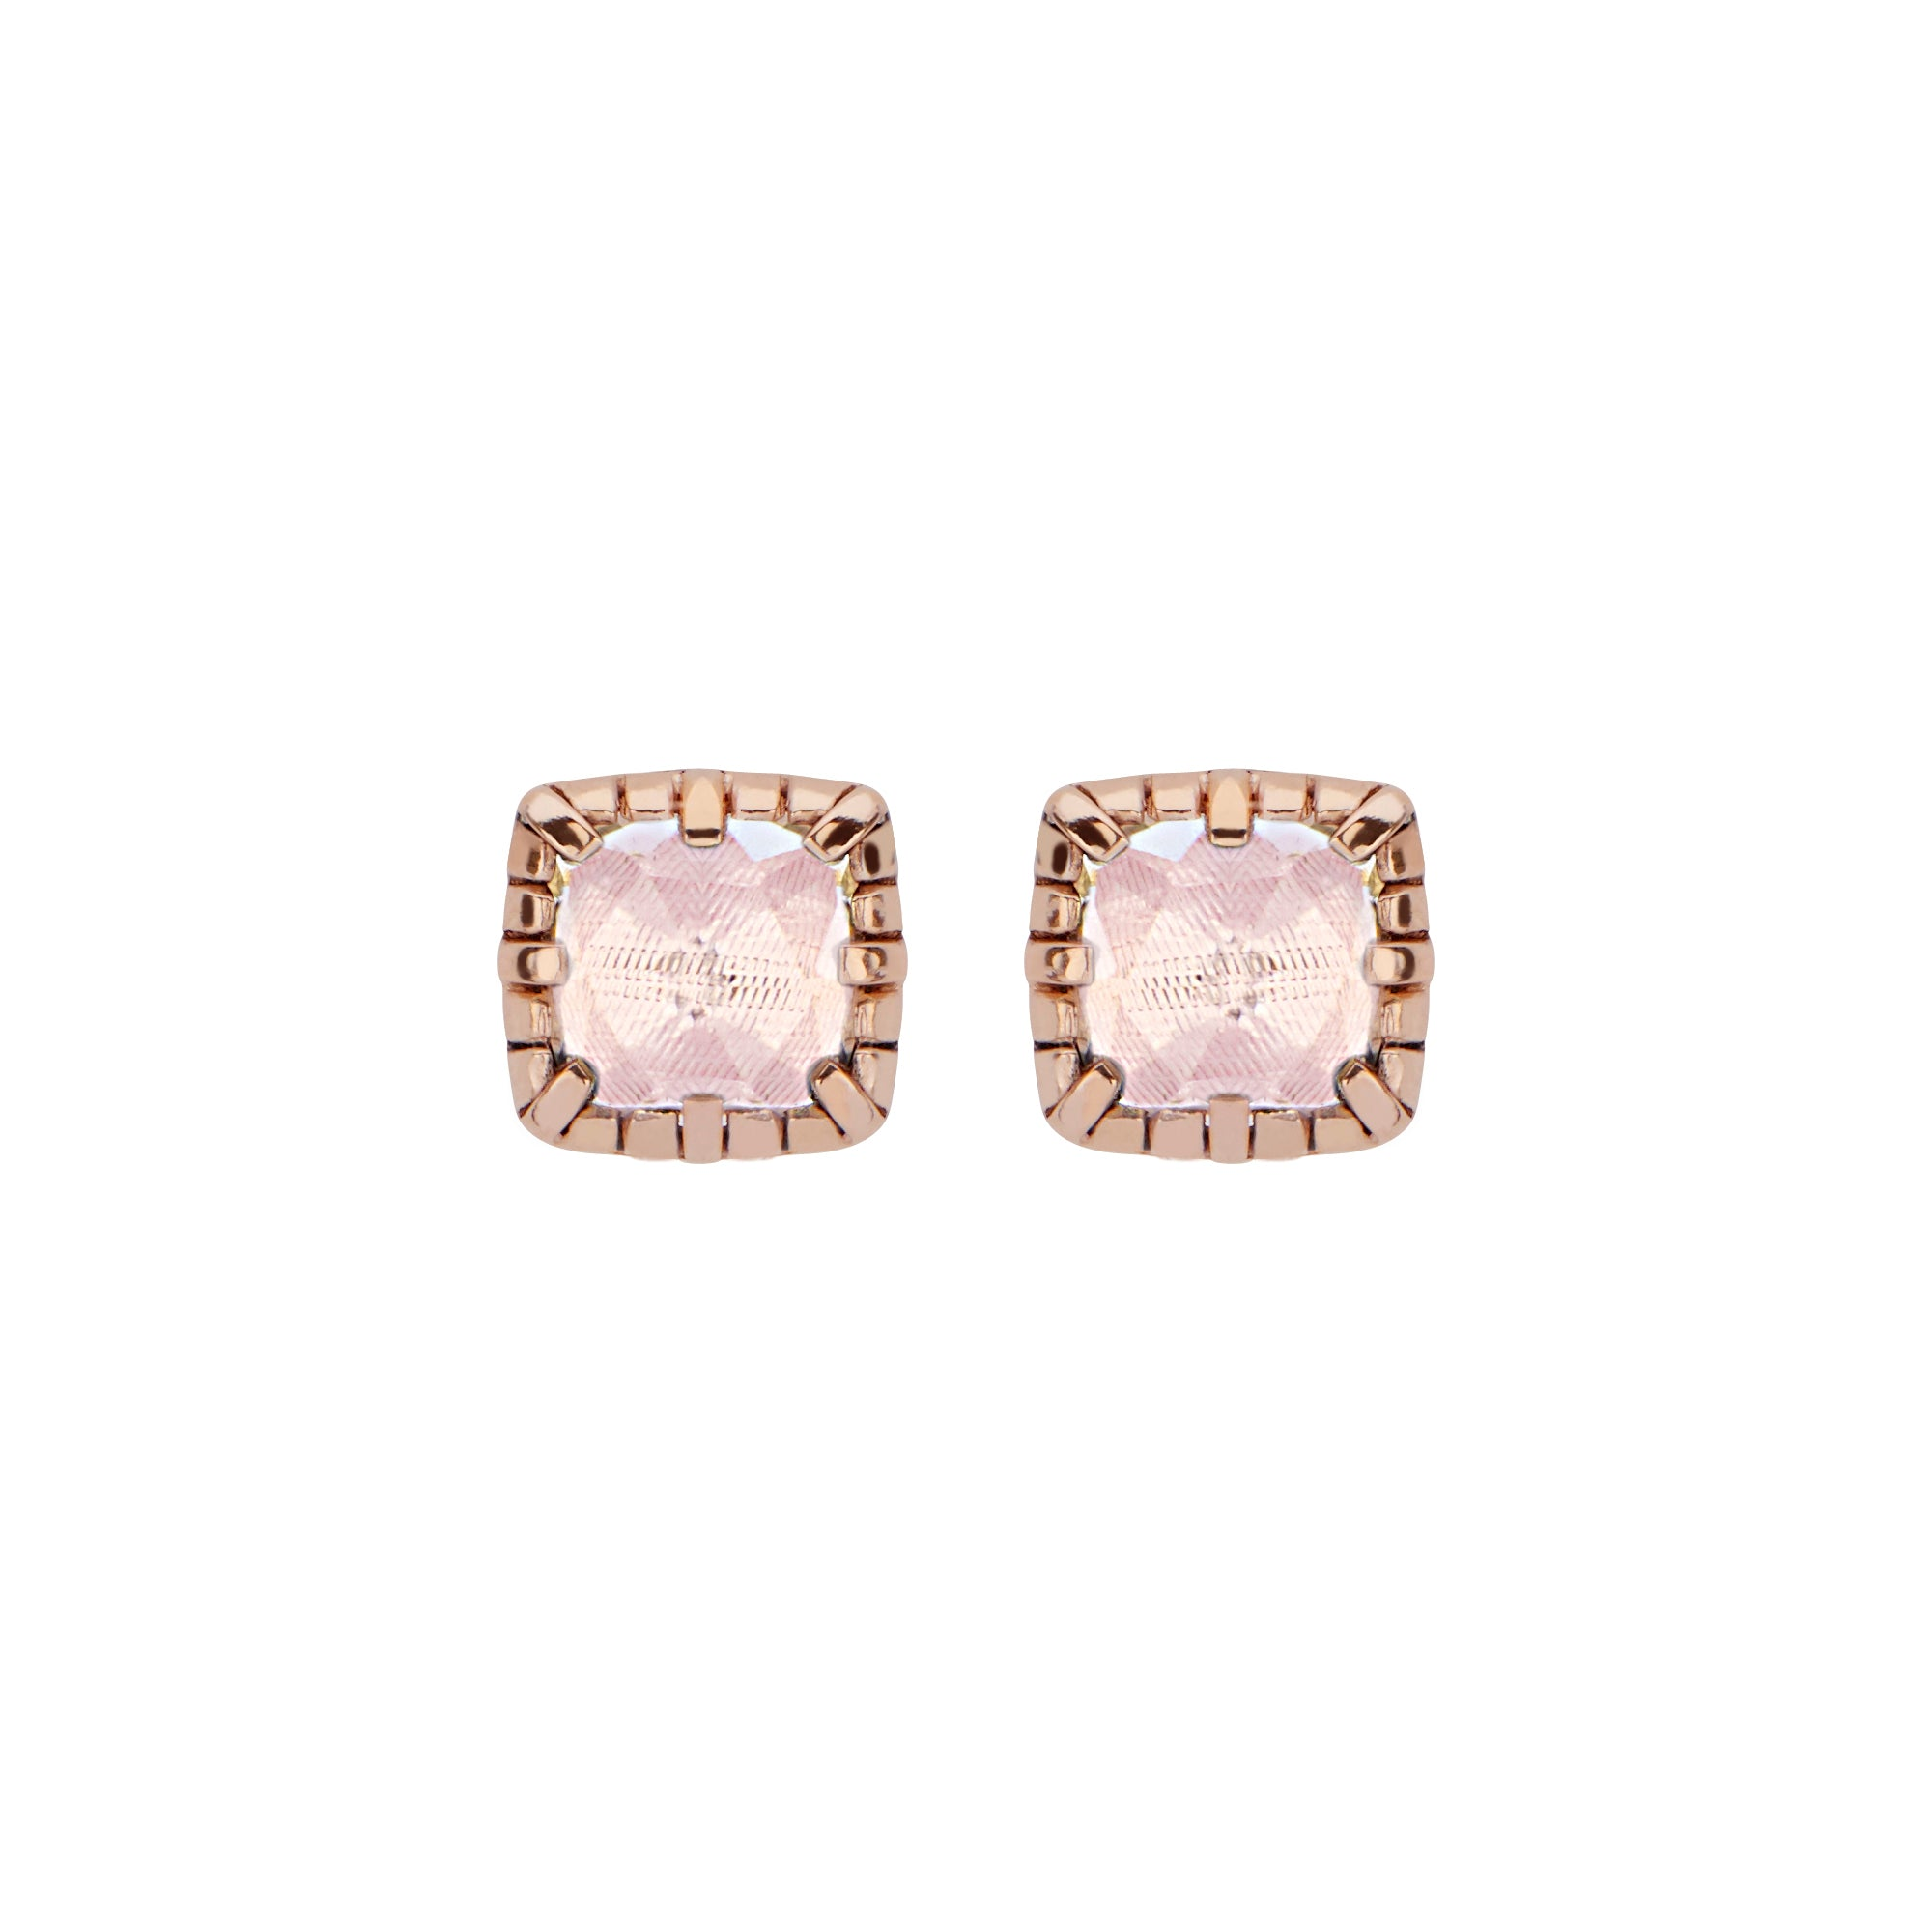 Bella Stud Earrings by Larkspur & Hawk for Broken English Jewelry